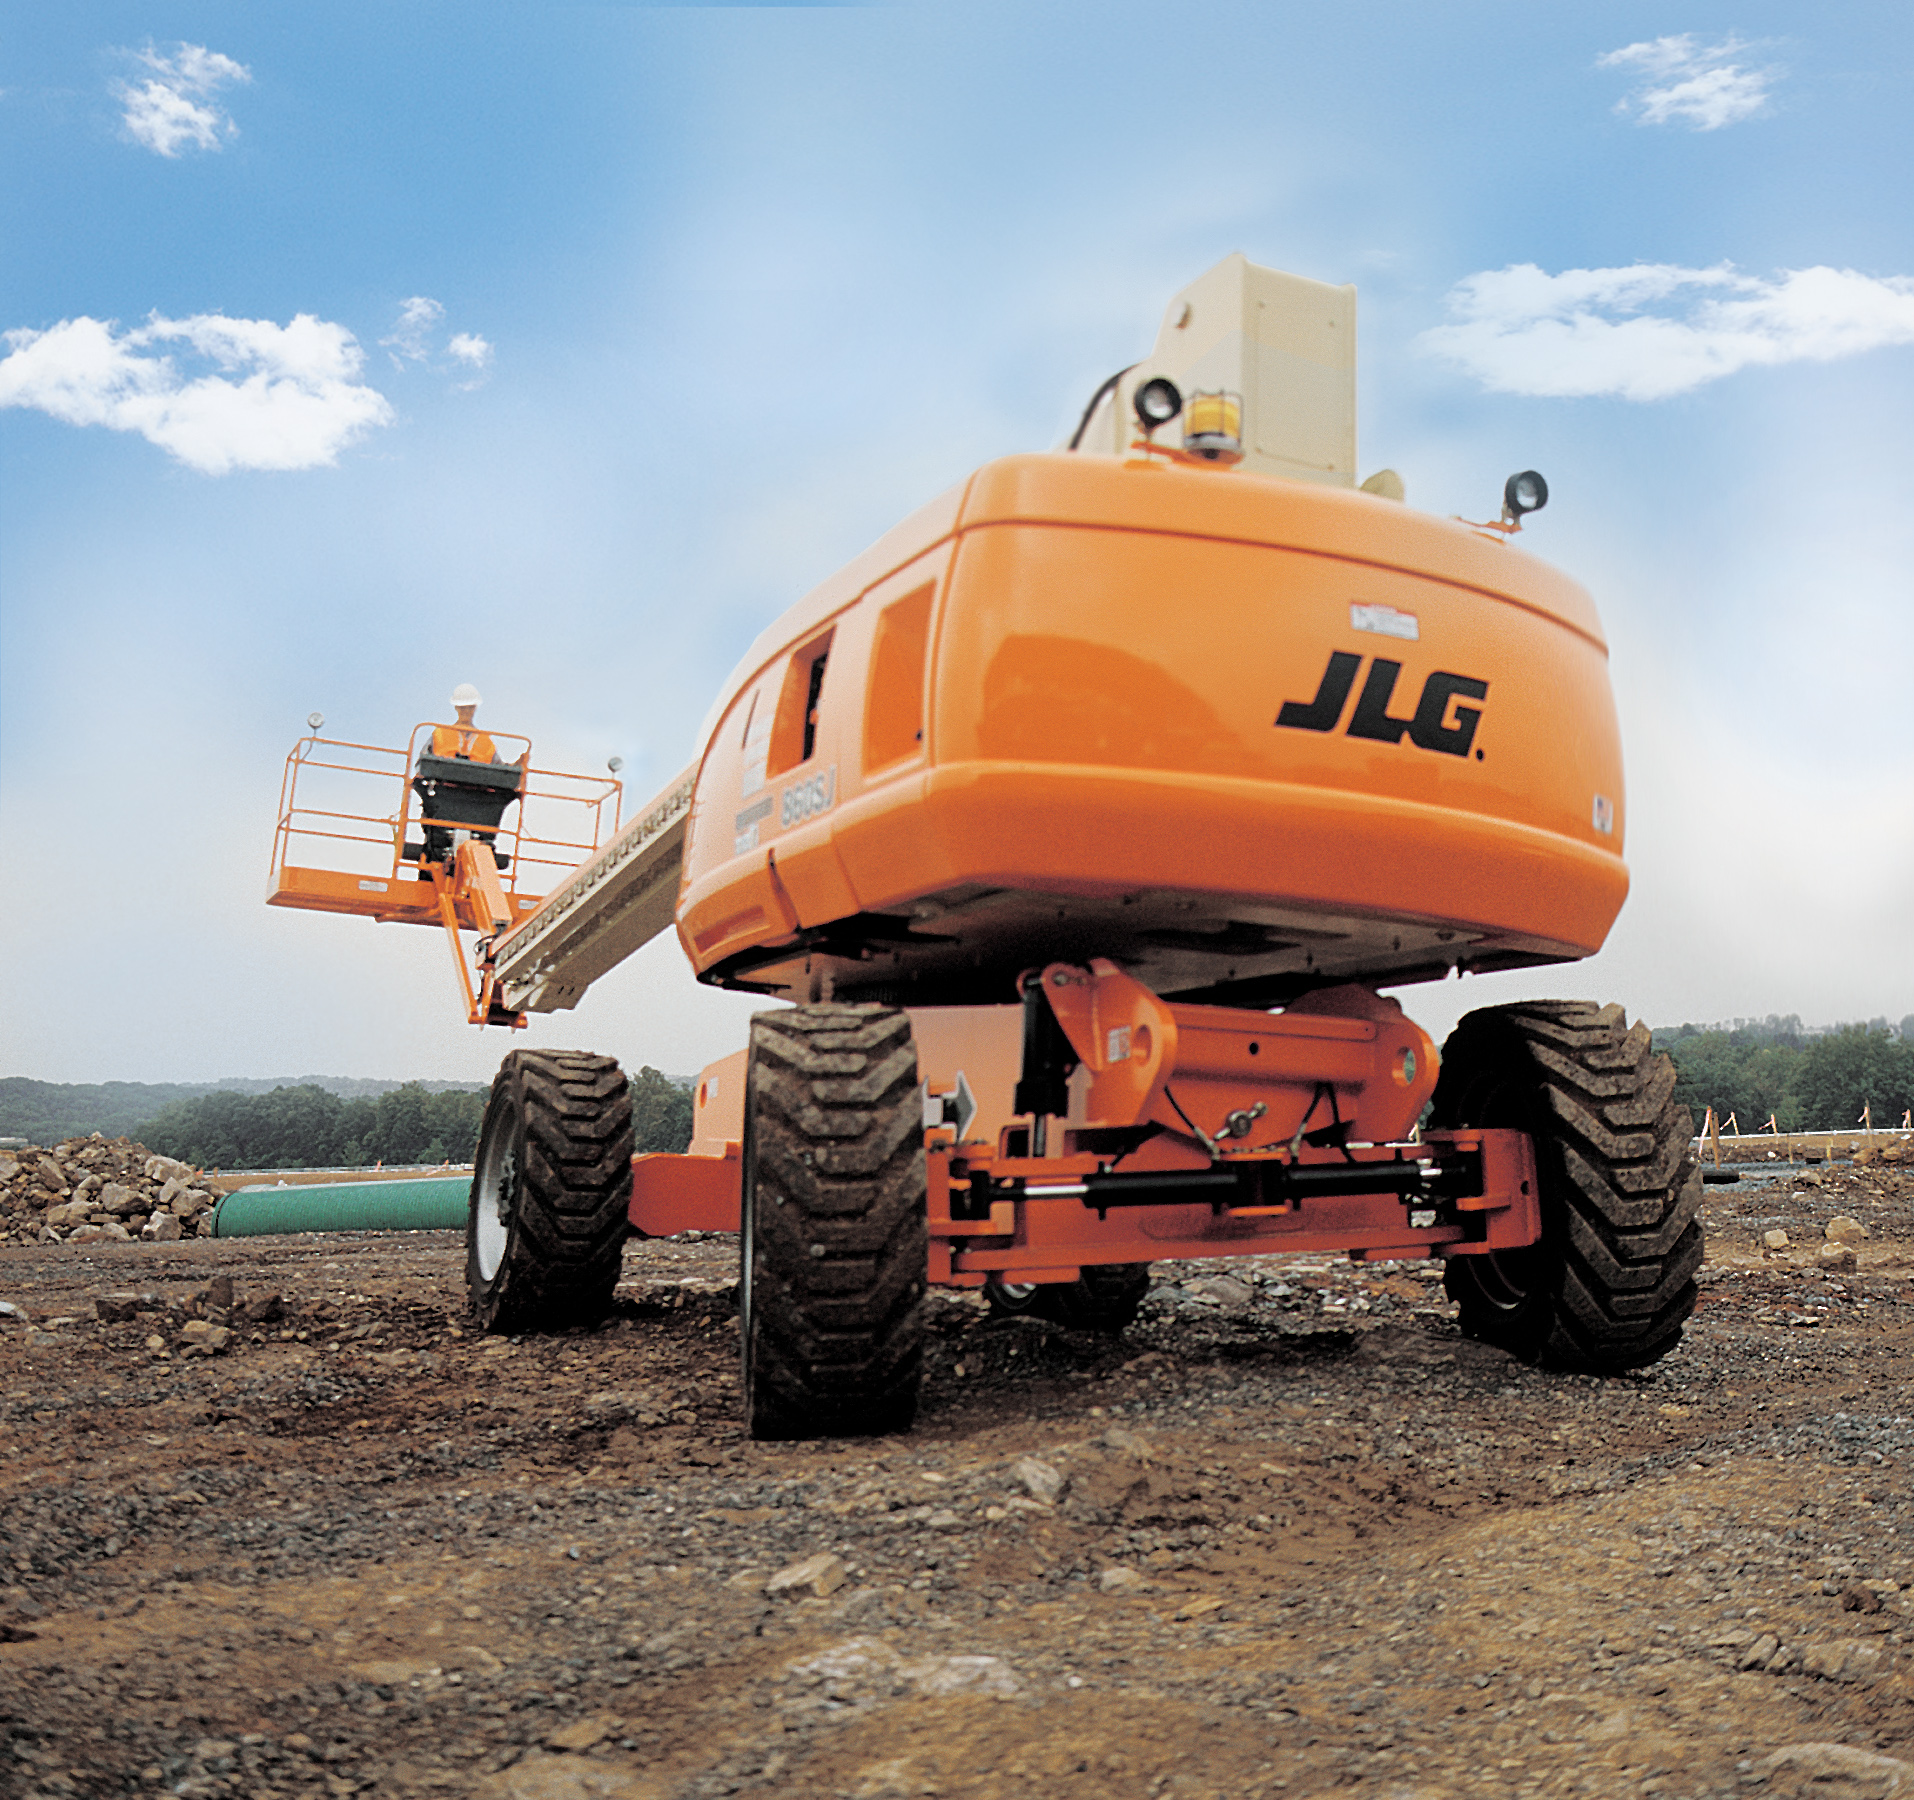 Welcome to The Modern Shop, JLG!